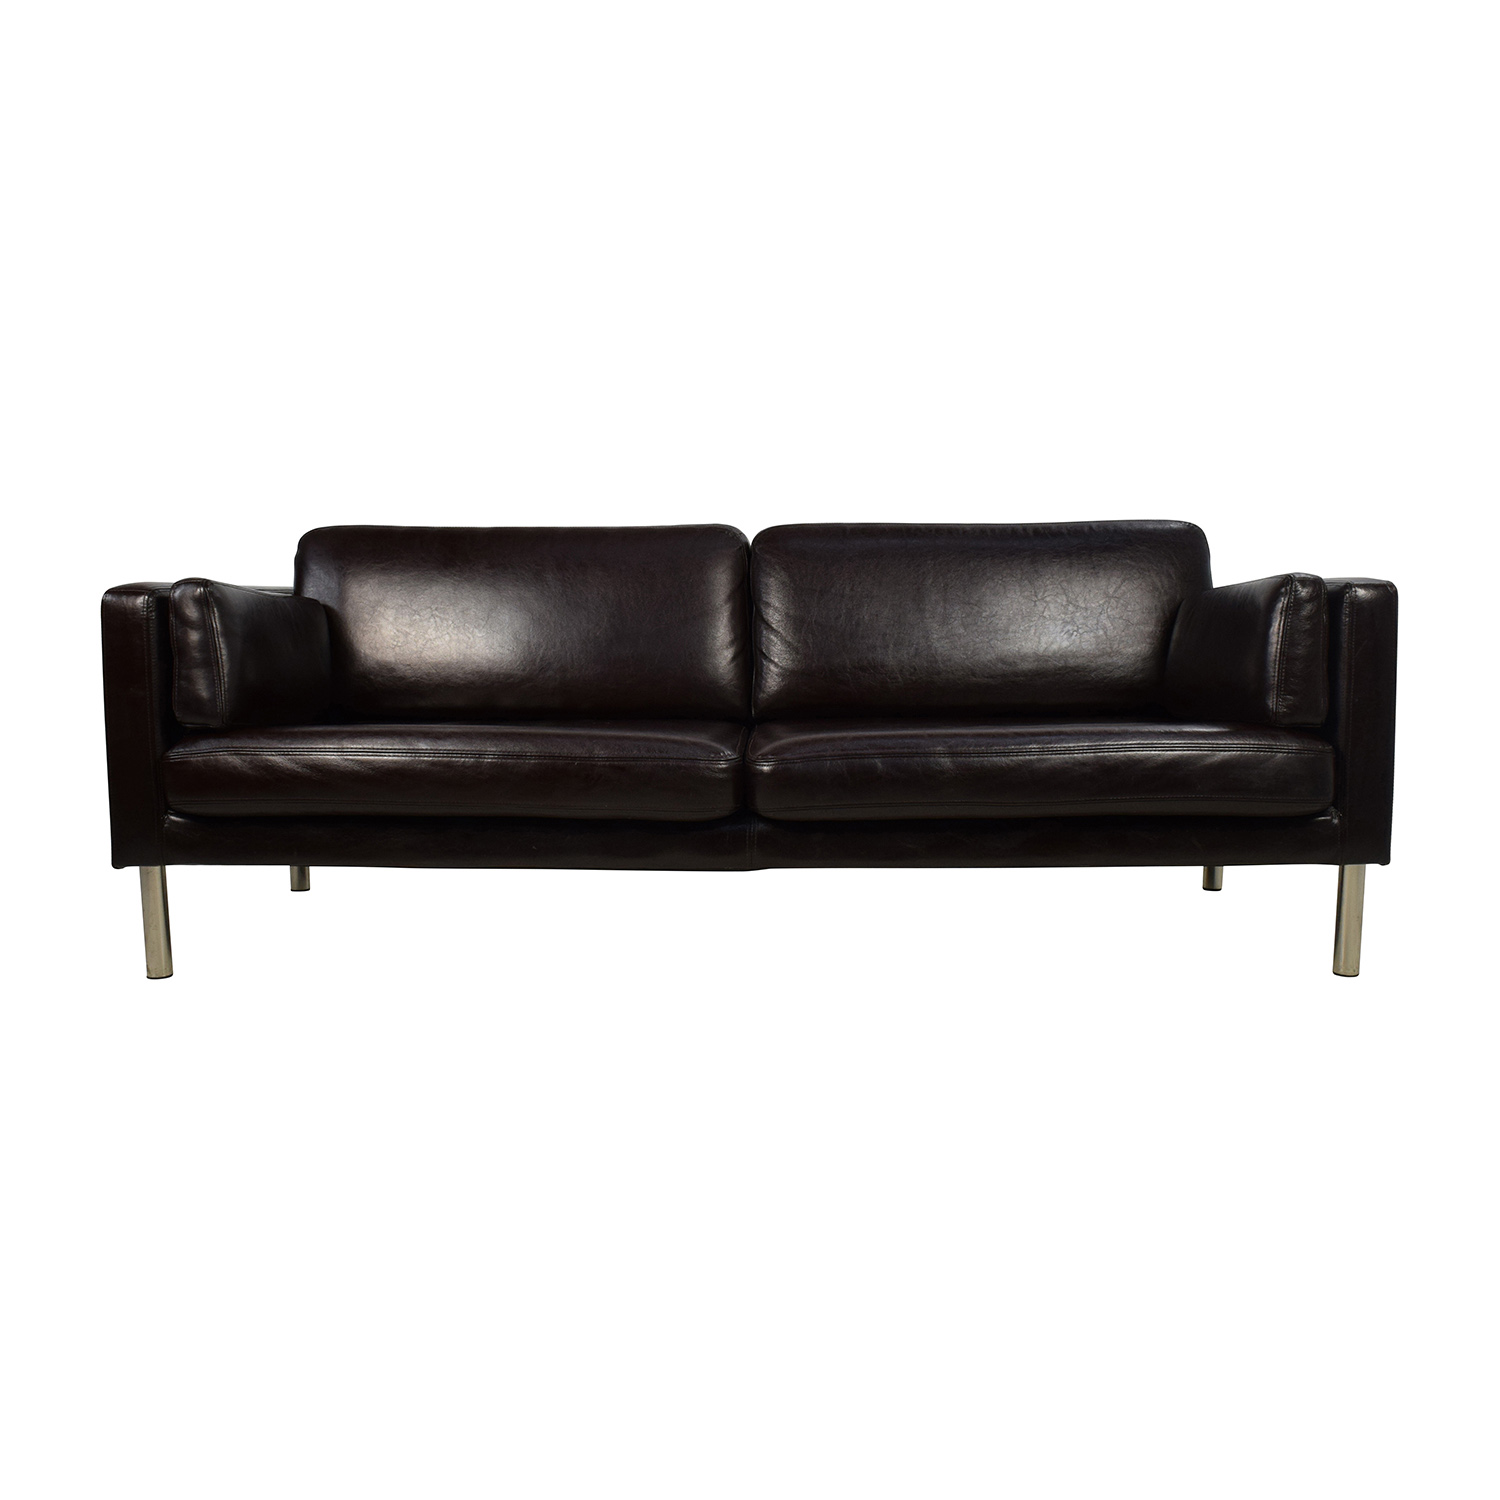 buy Brown Leather Sofa with Chrome Legs online